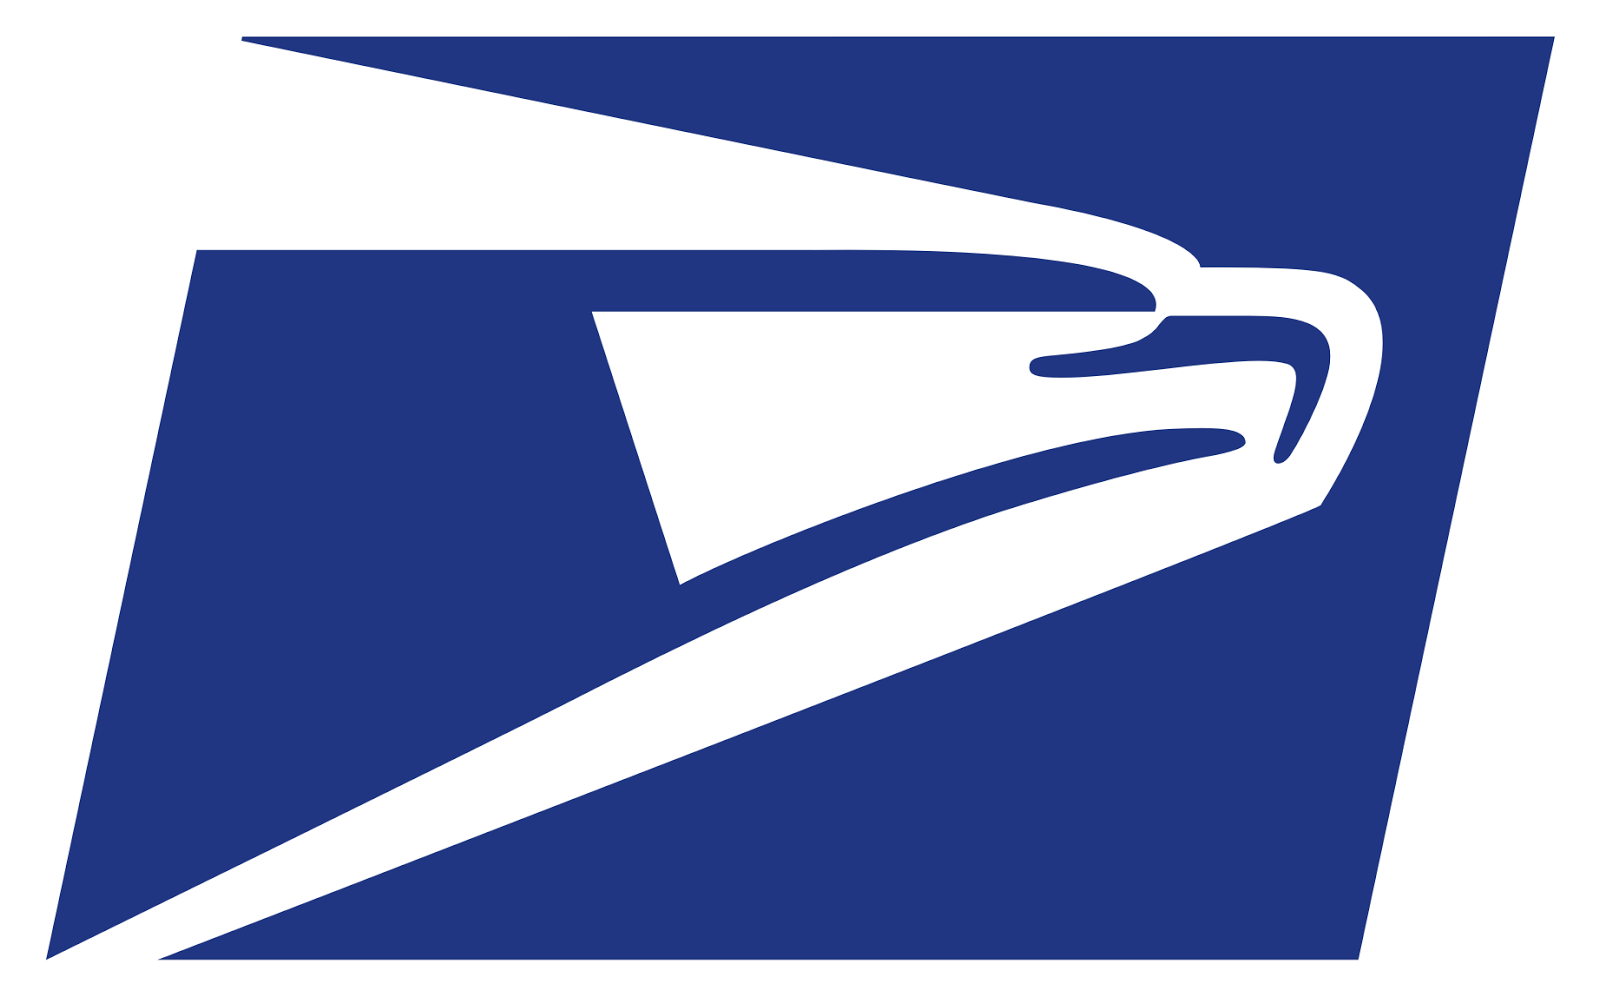 Mail clipart postal worker. Logos